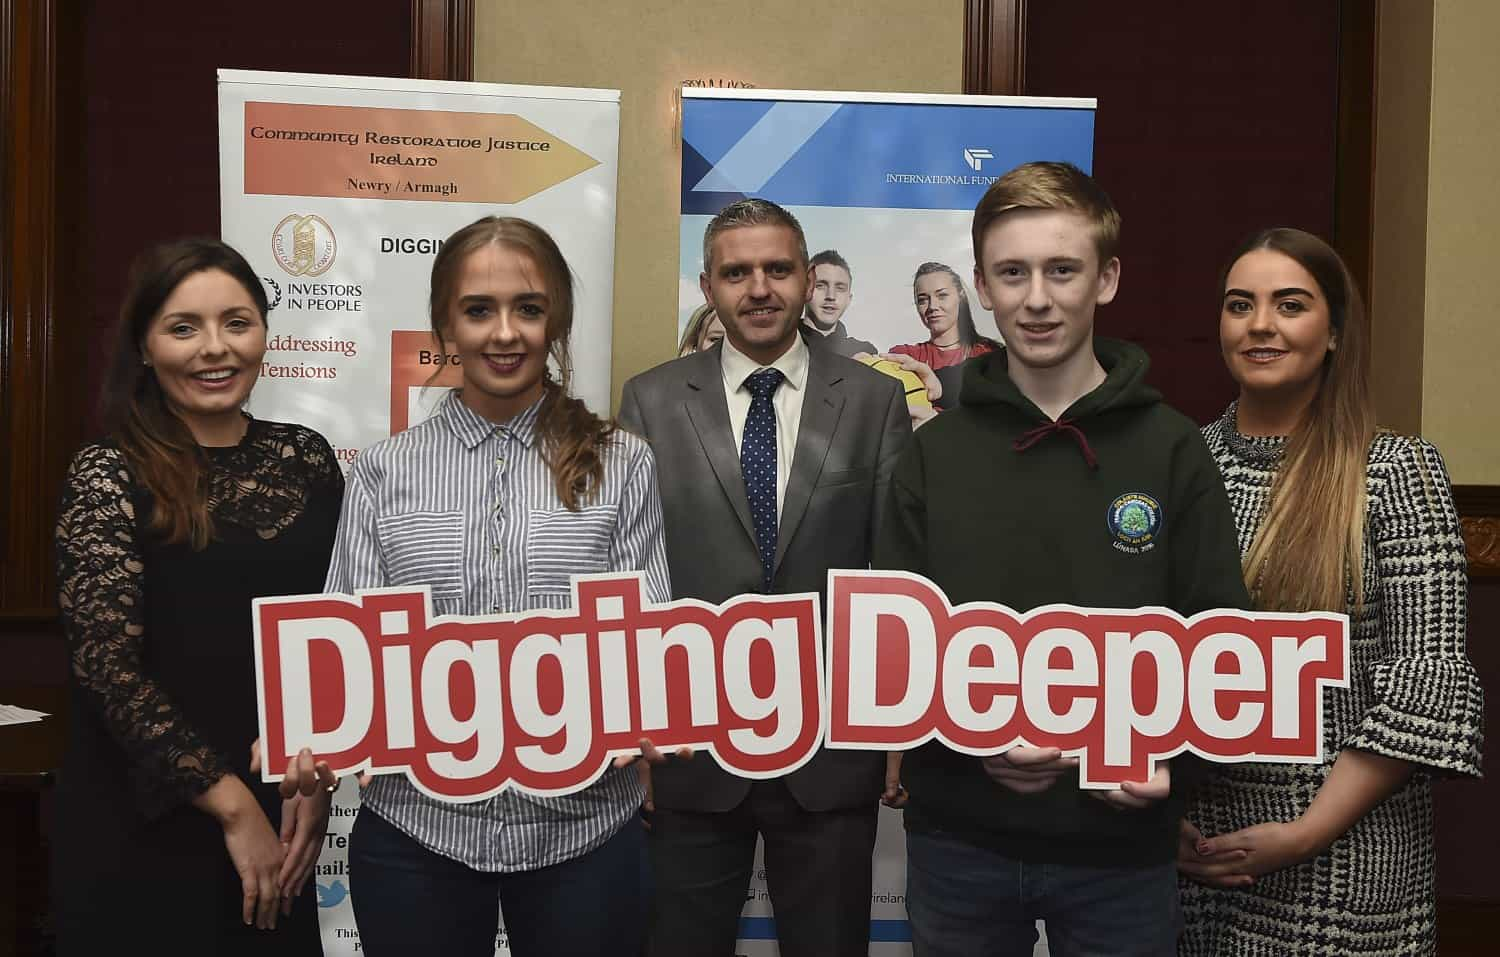 Young people get in gear for safer driving and community leadership in Newry/Armagh